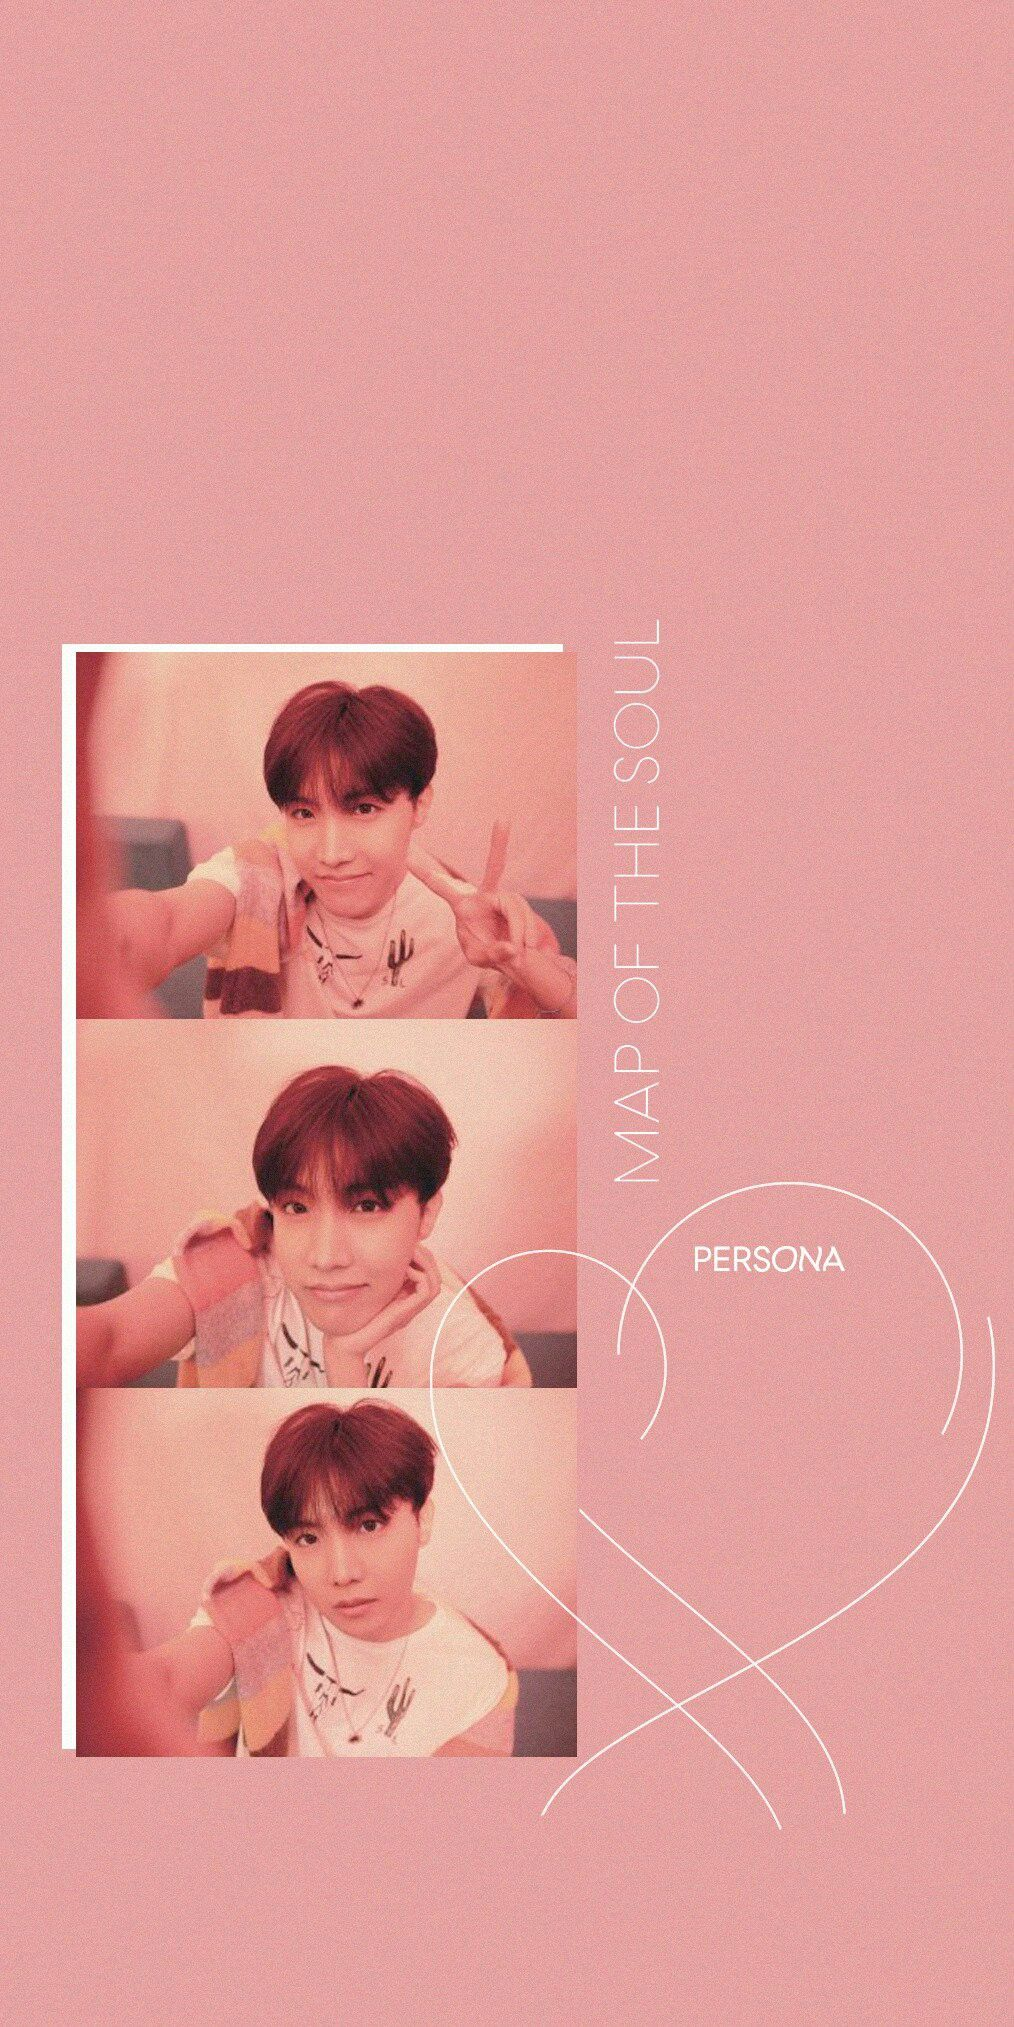 Free Download Bts Map Of The Soul Persona Concept Photos